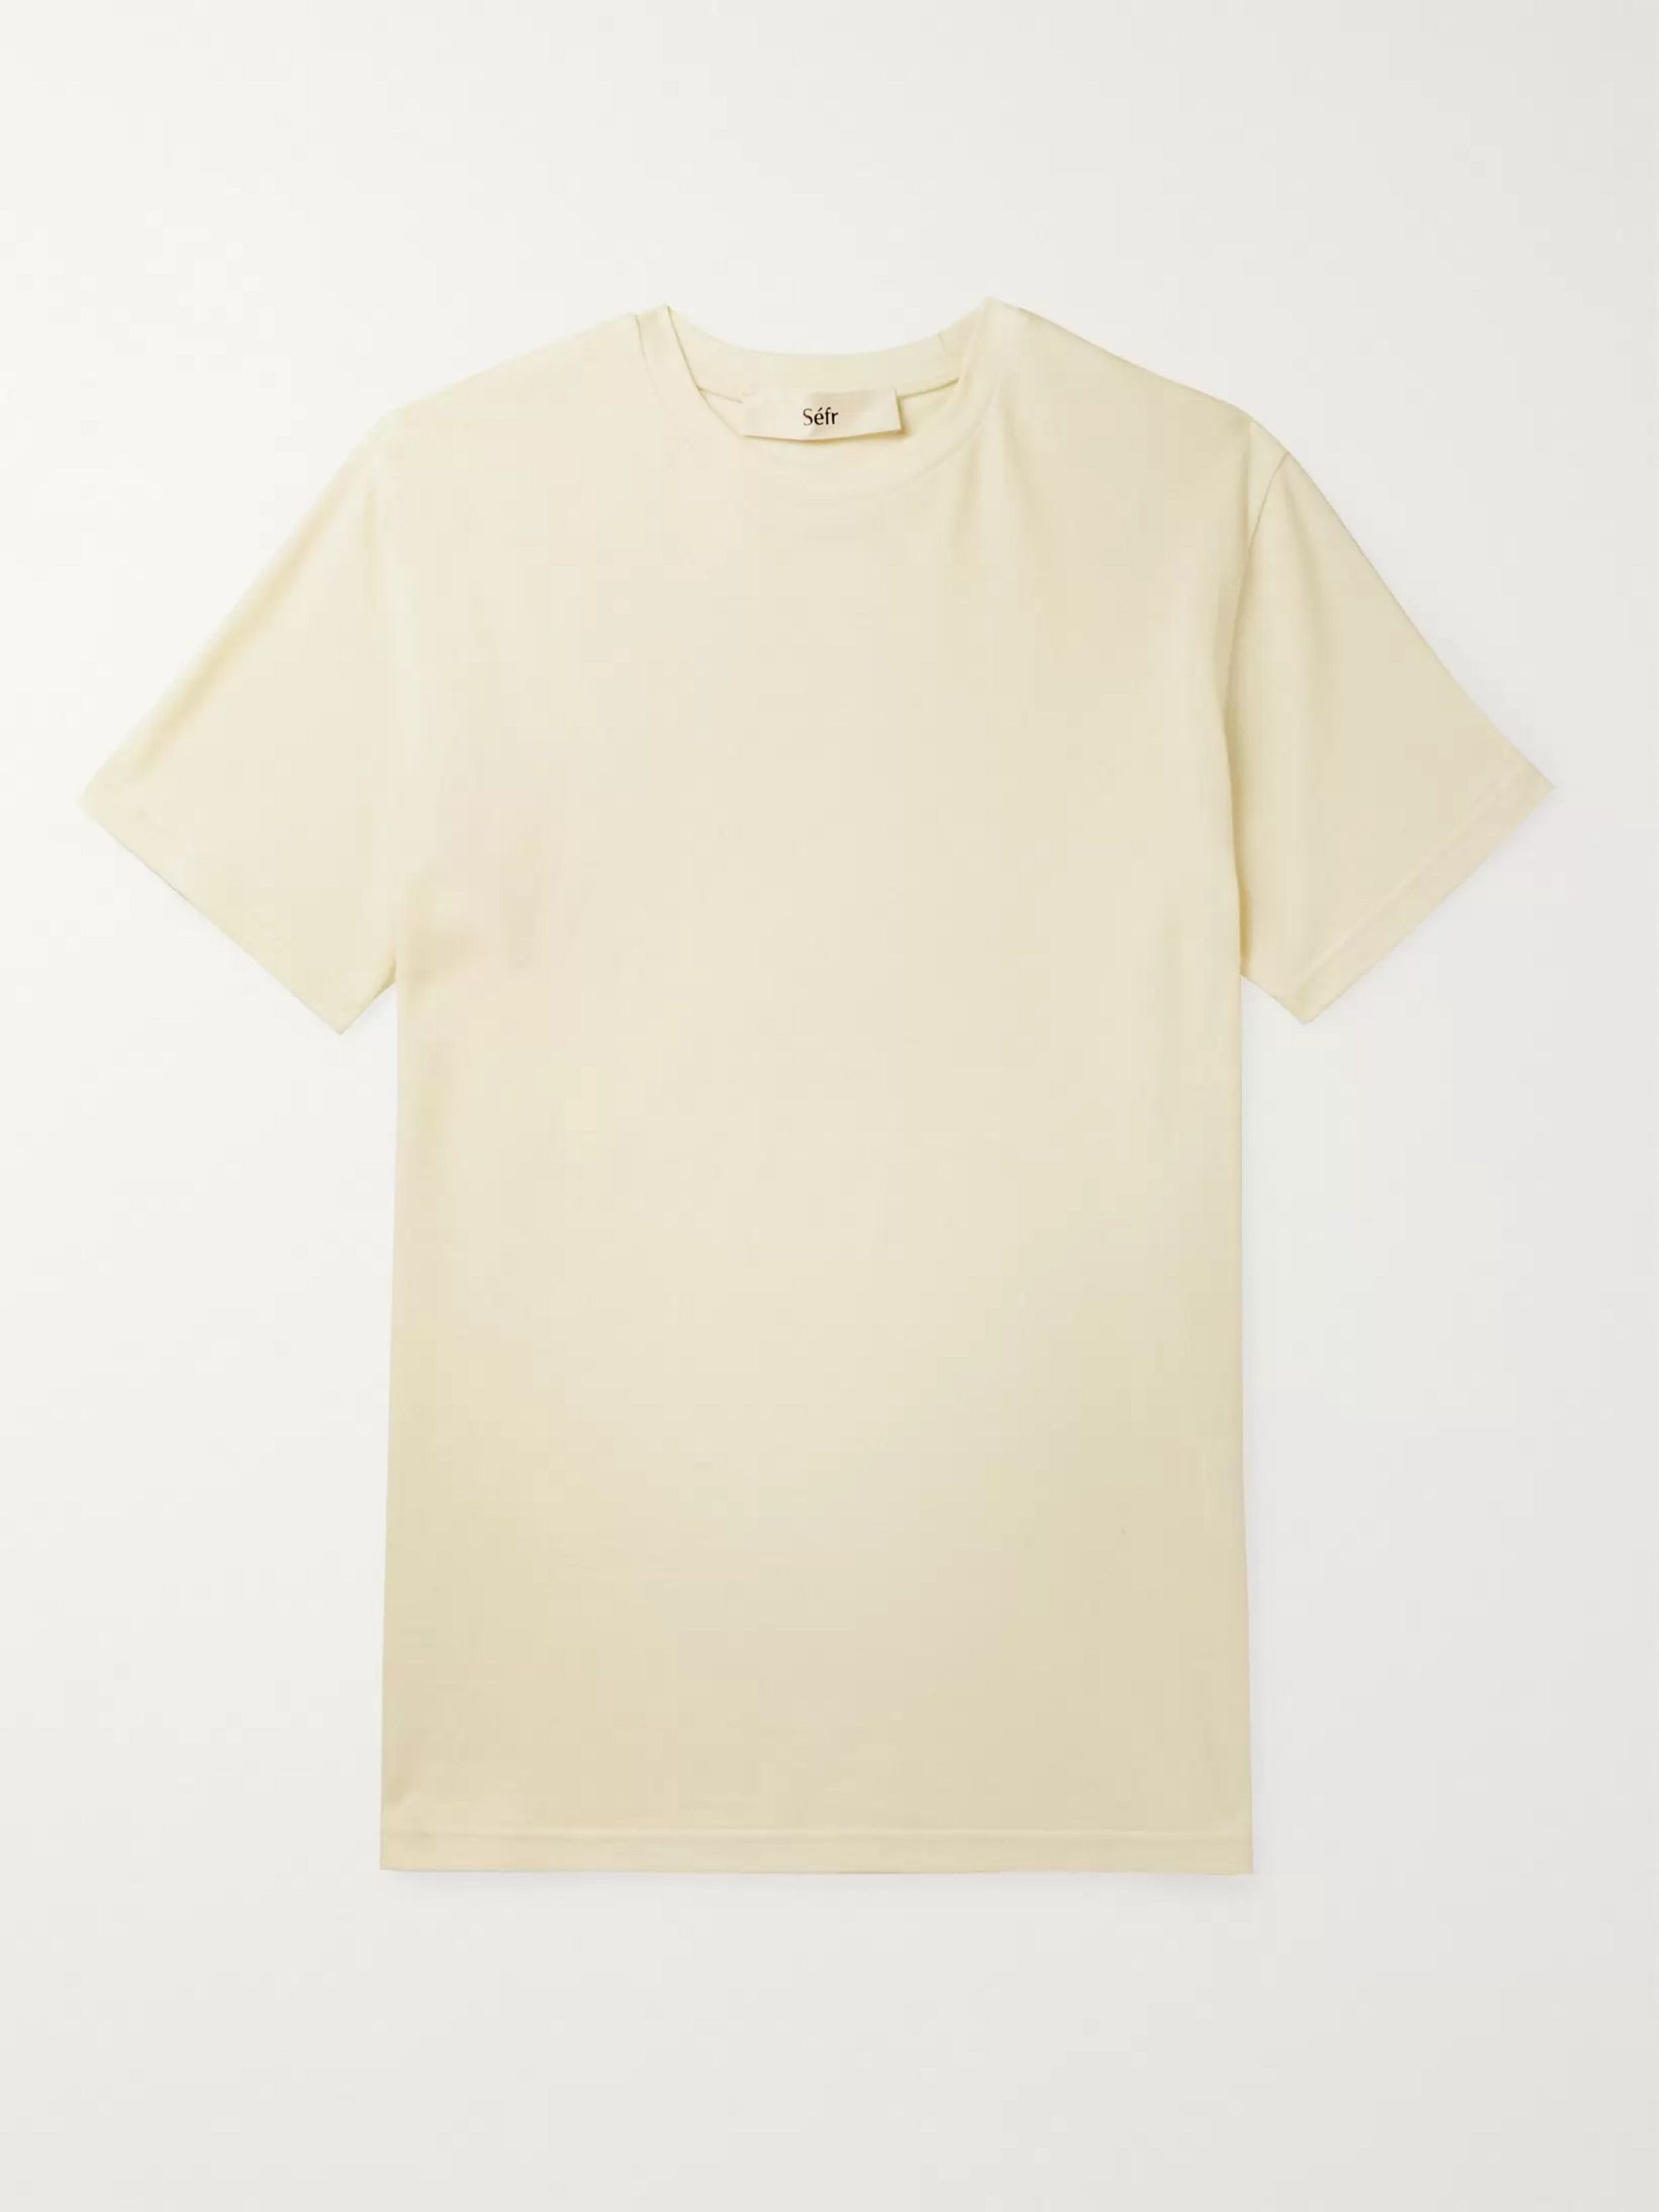 Séfr Clin Cotton-Jersey T-Shirt